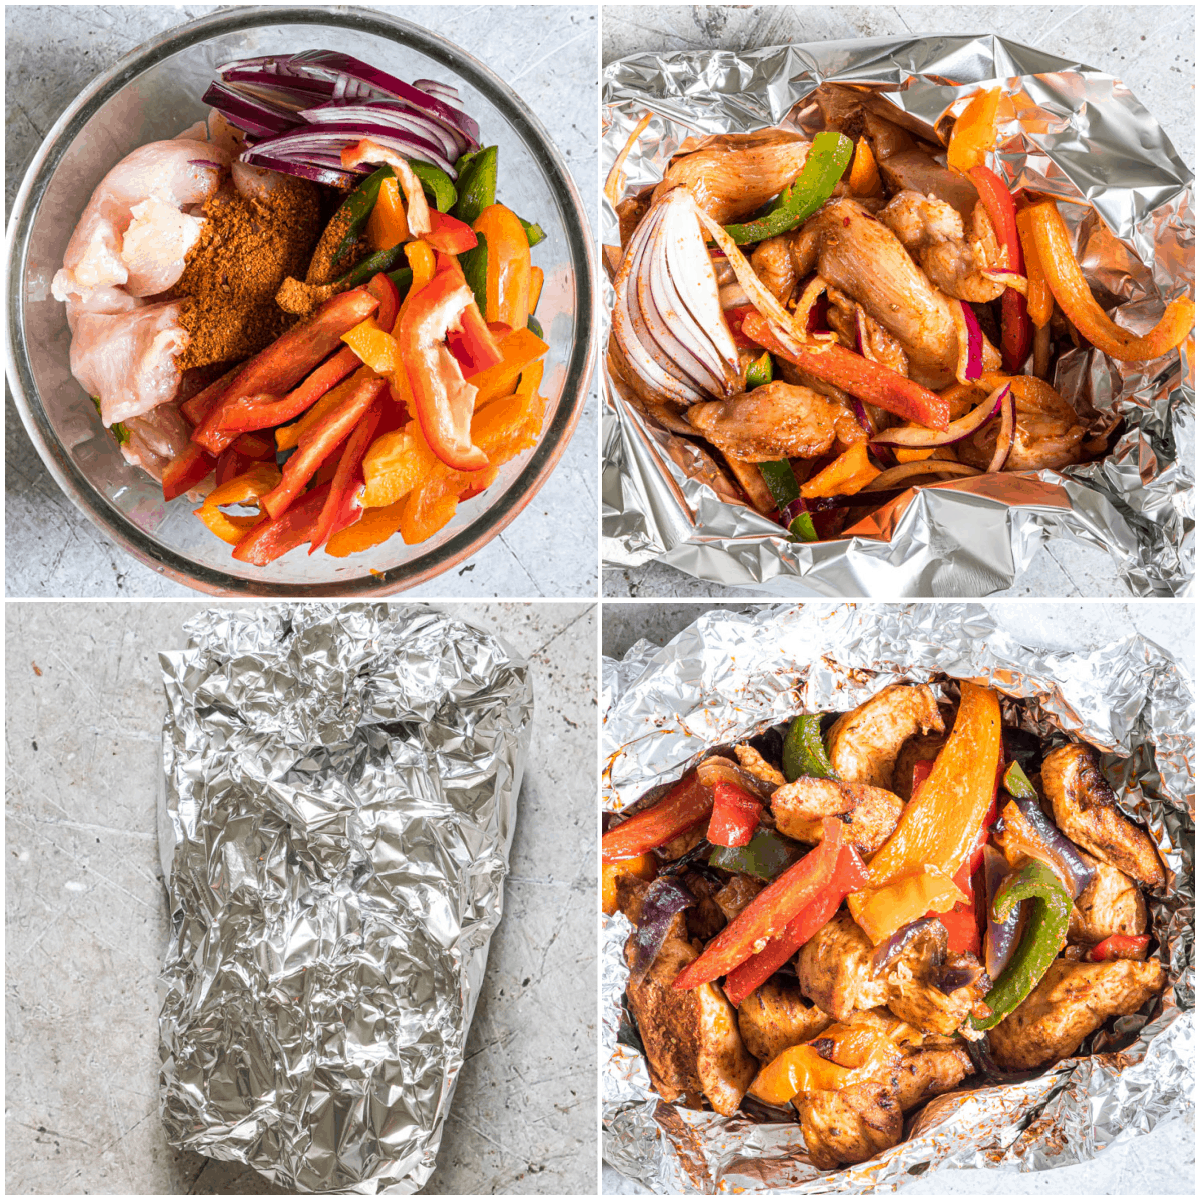 image collage showing the steps for making chicken fajita foil packets